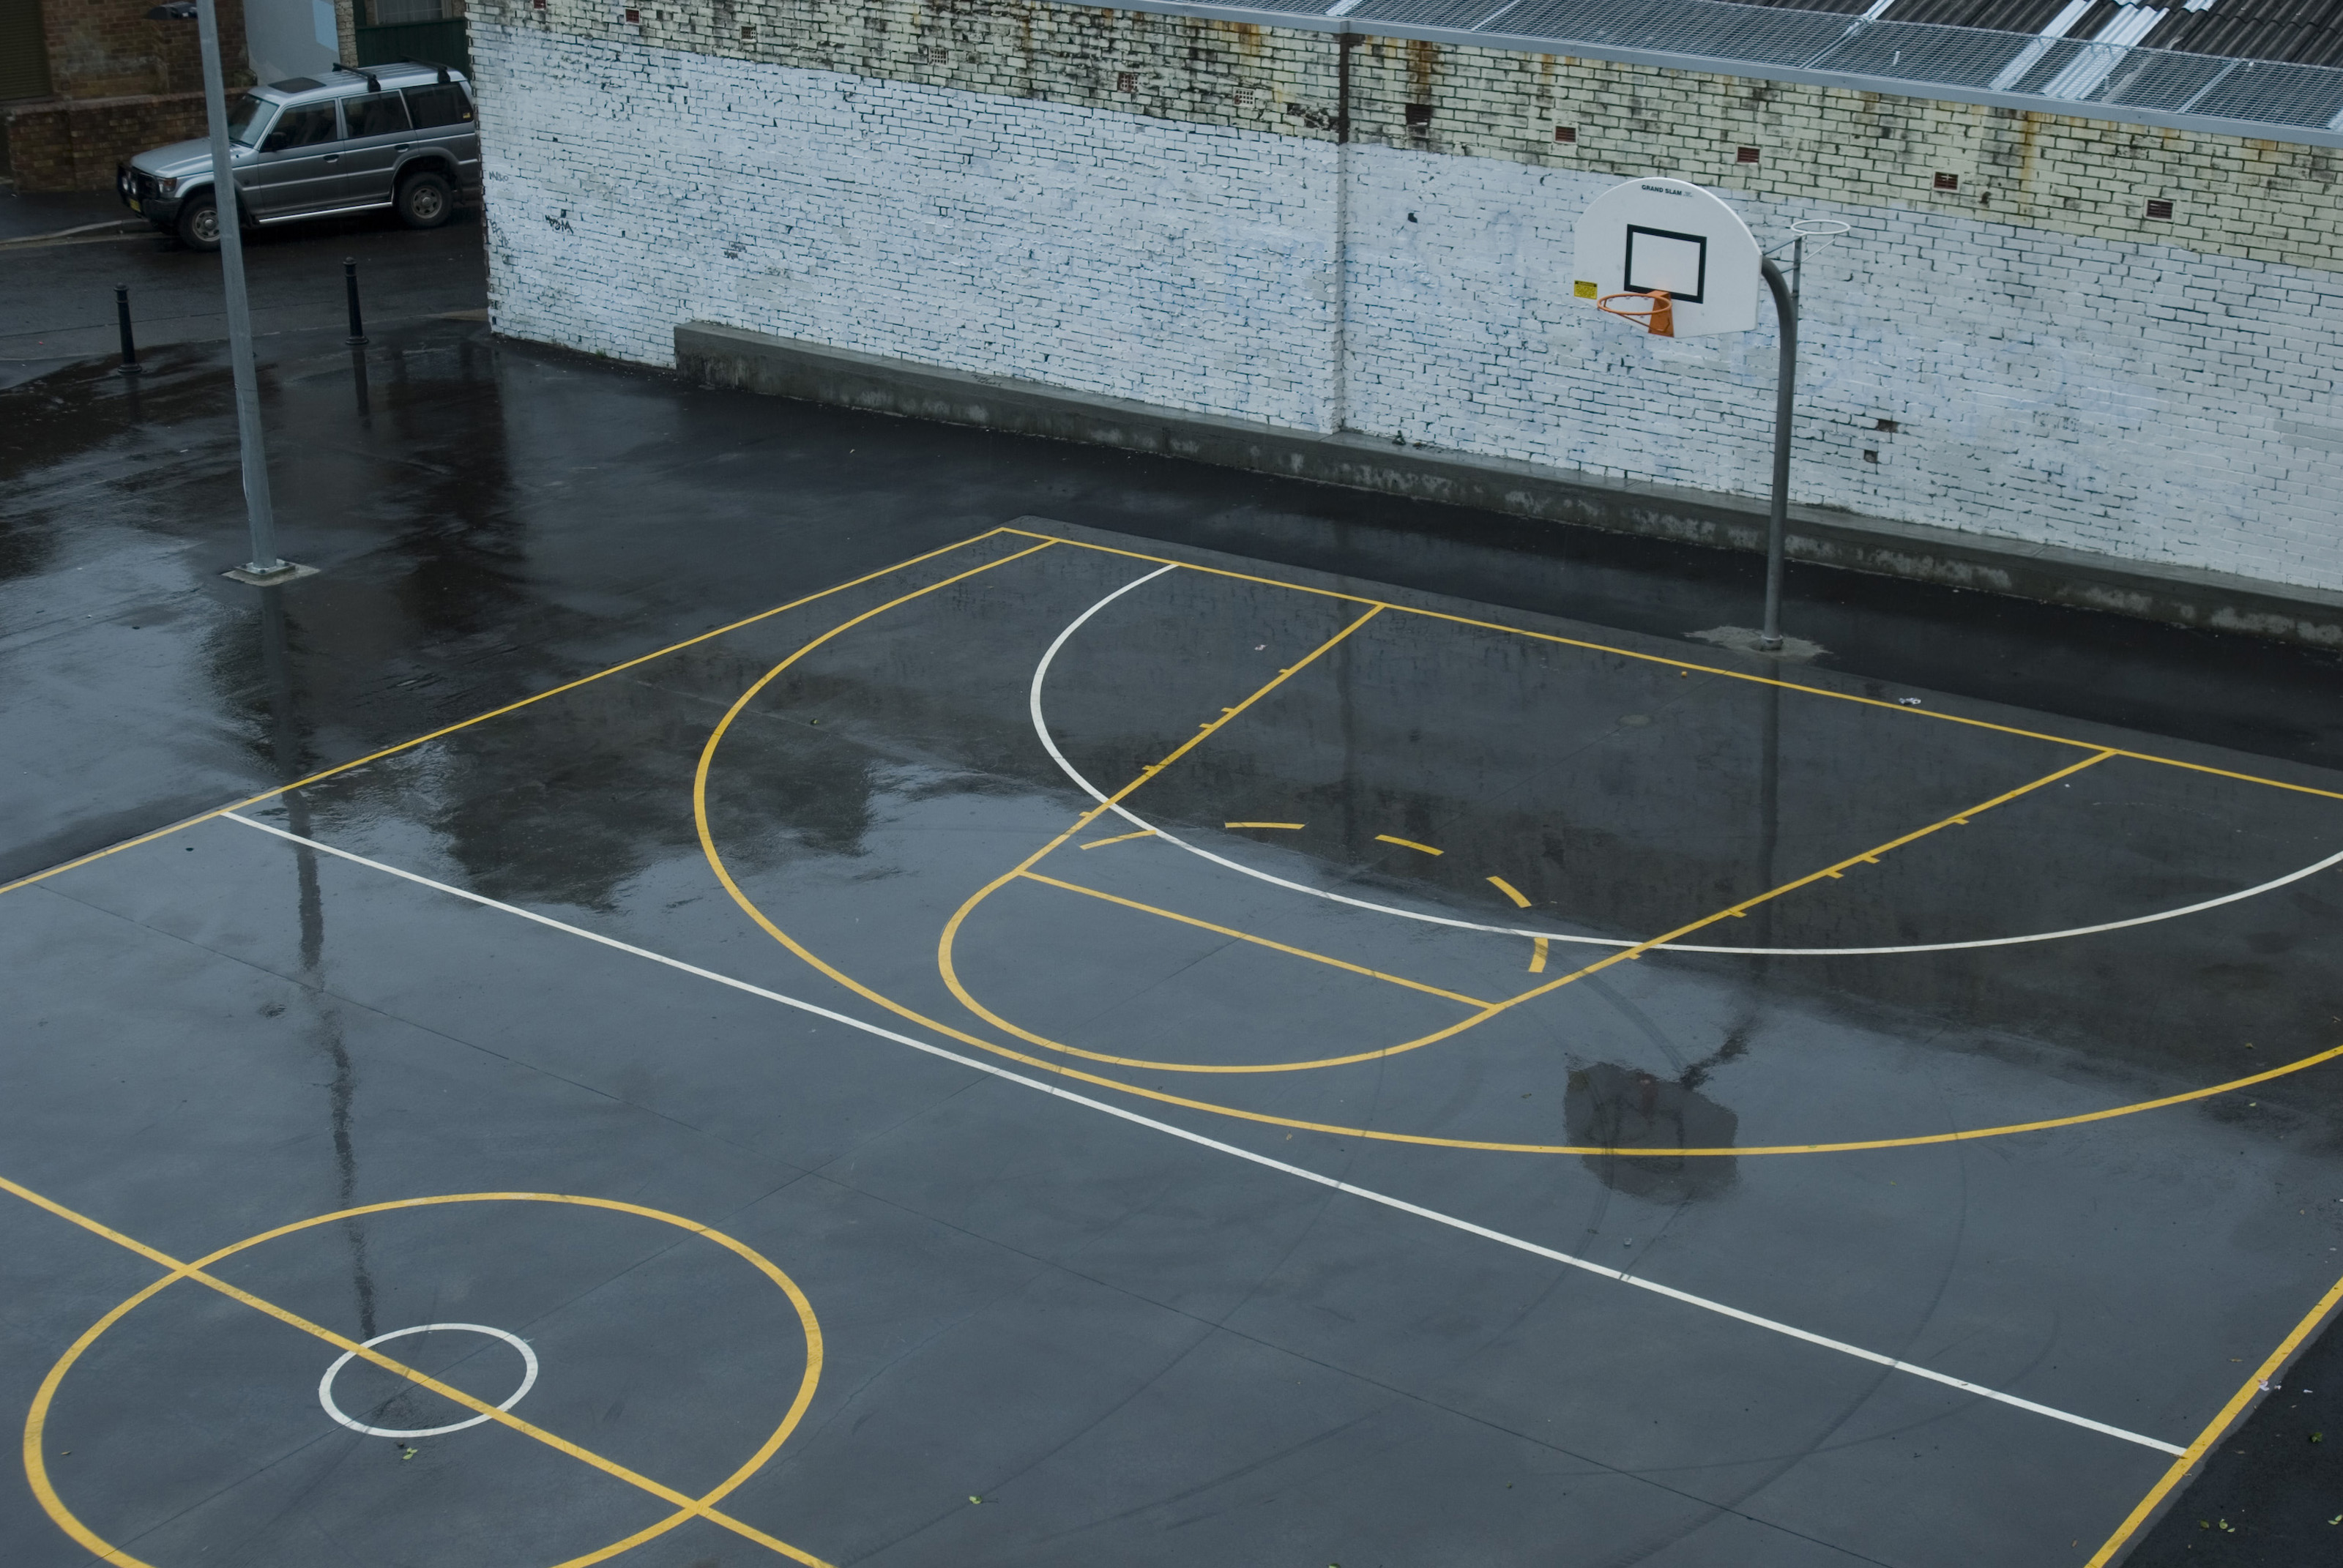 wet basketball court 3847 stockarch free stock photos